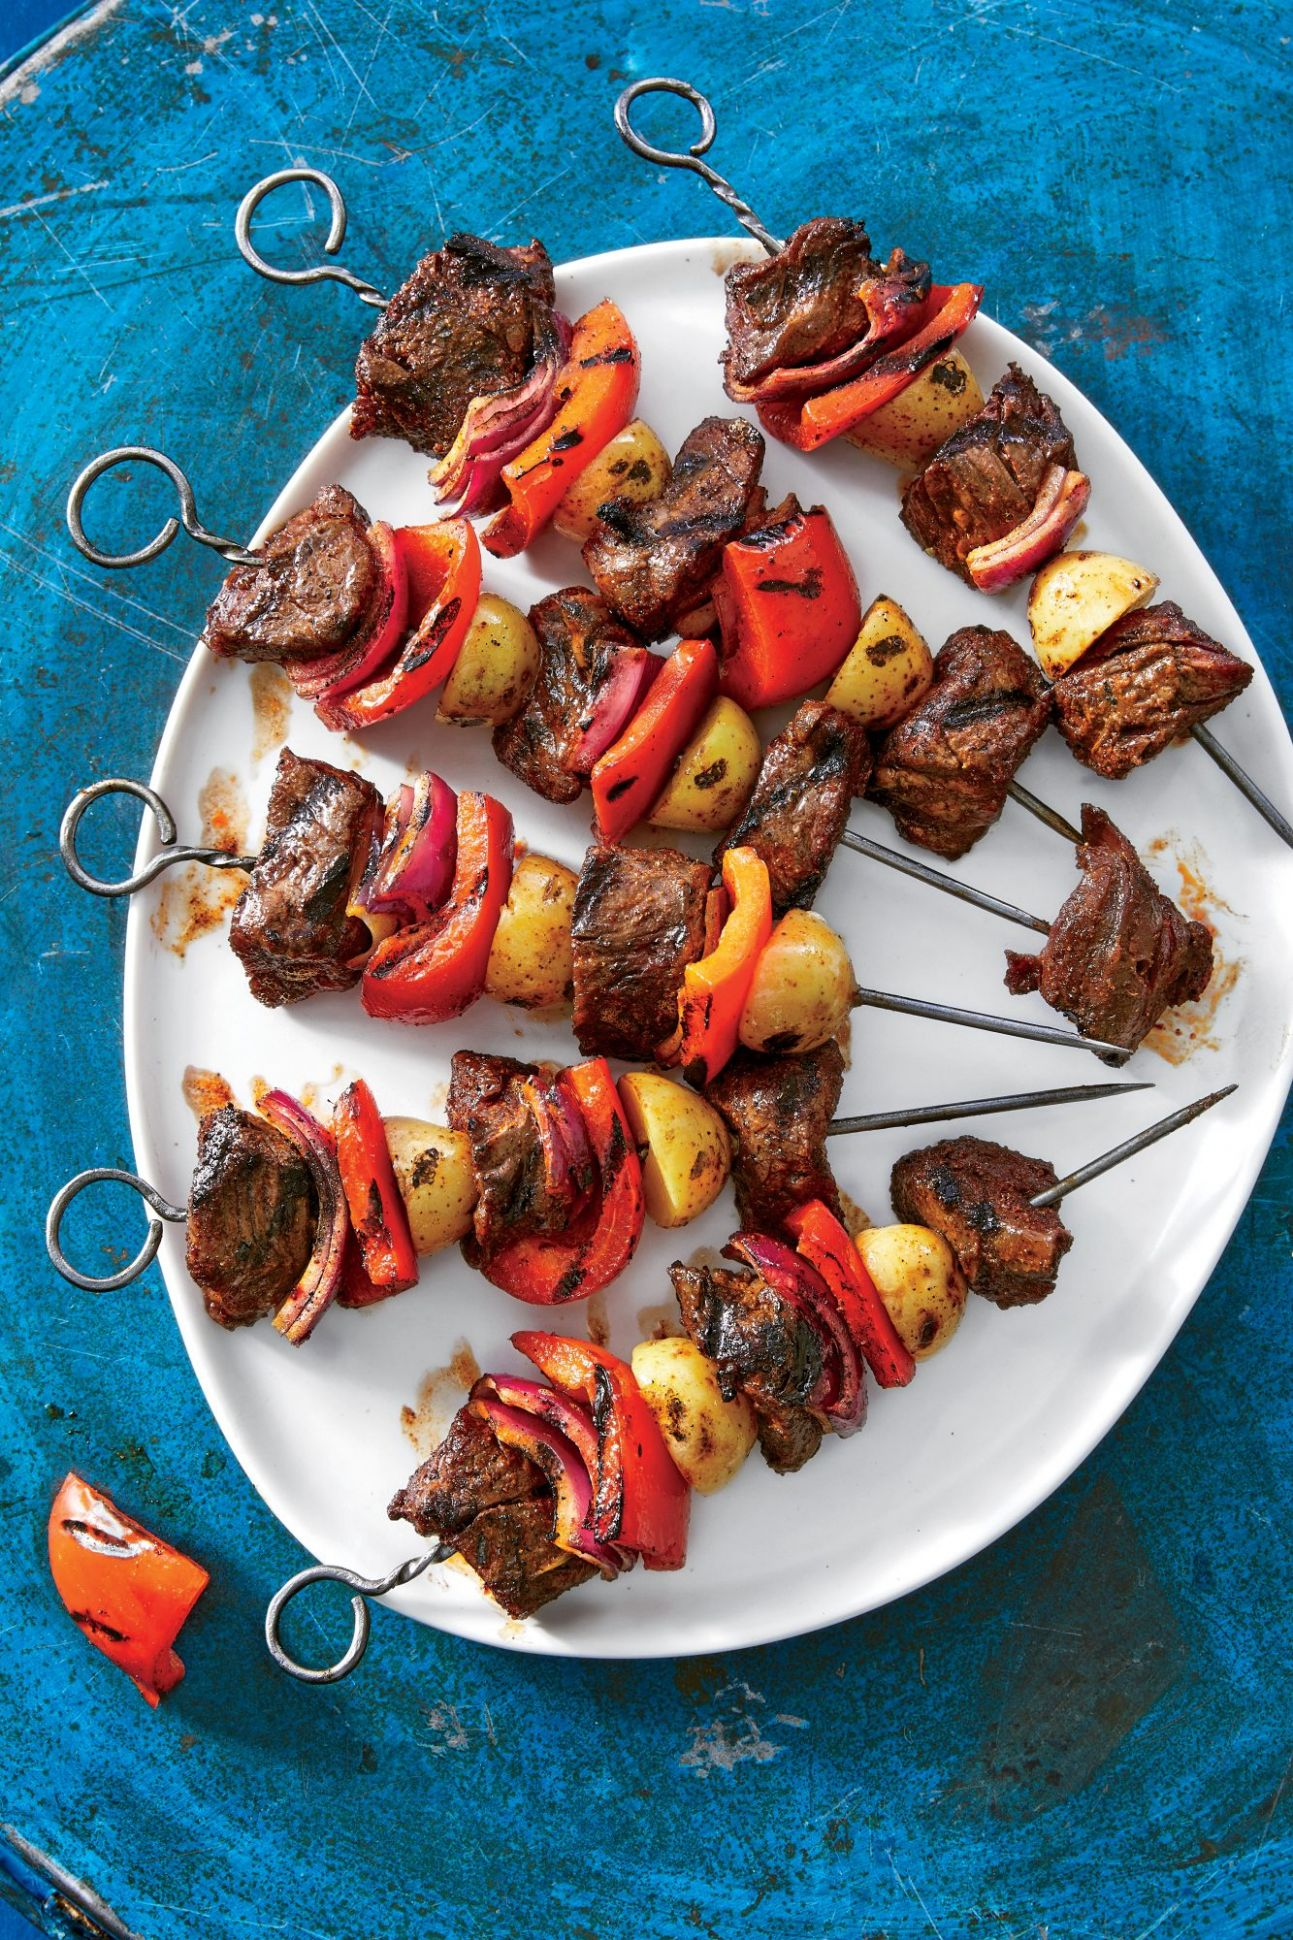 Summer Dinner Ideas That Make  Most of  Season | Southern Living - Recipes Summer Dinner